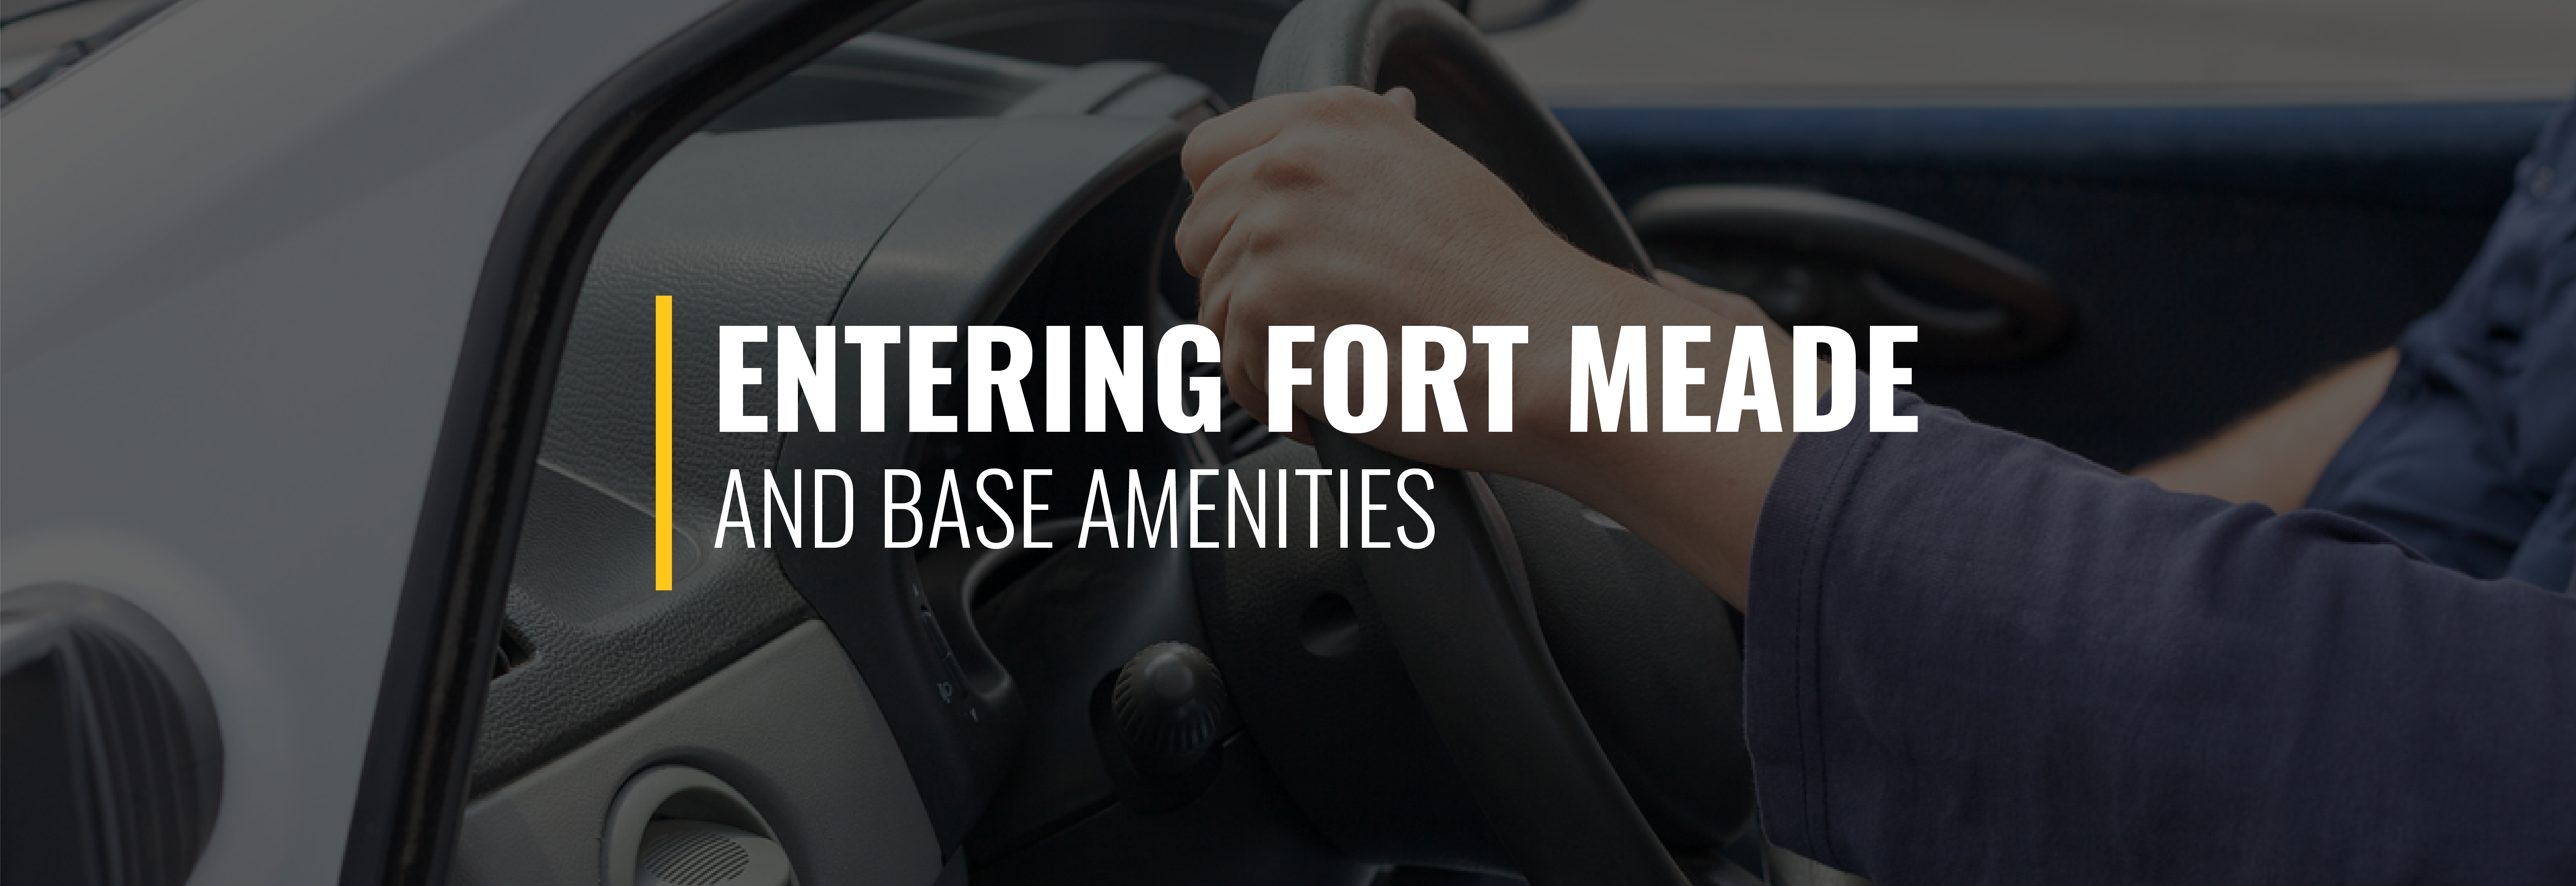 Entering Fort Meade and Base Amenities